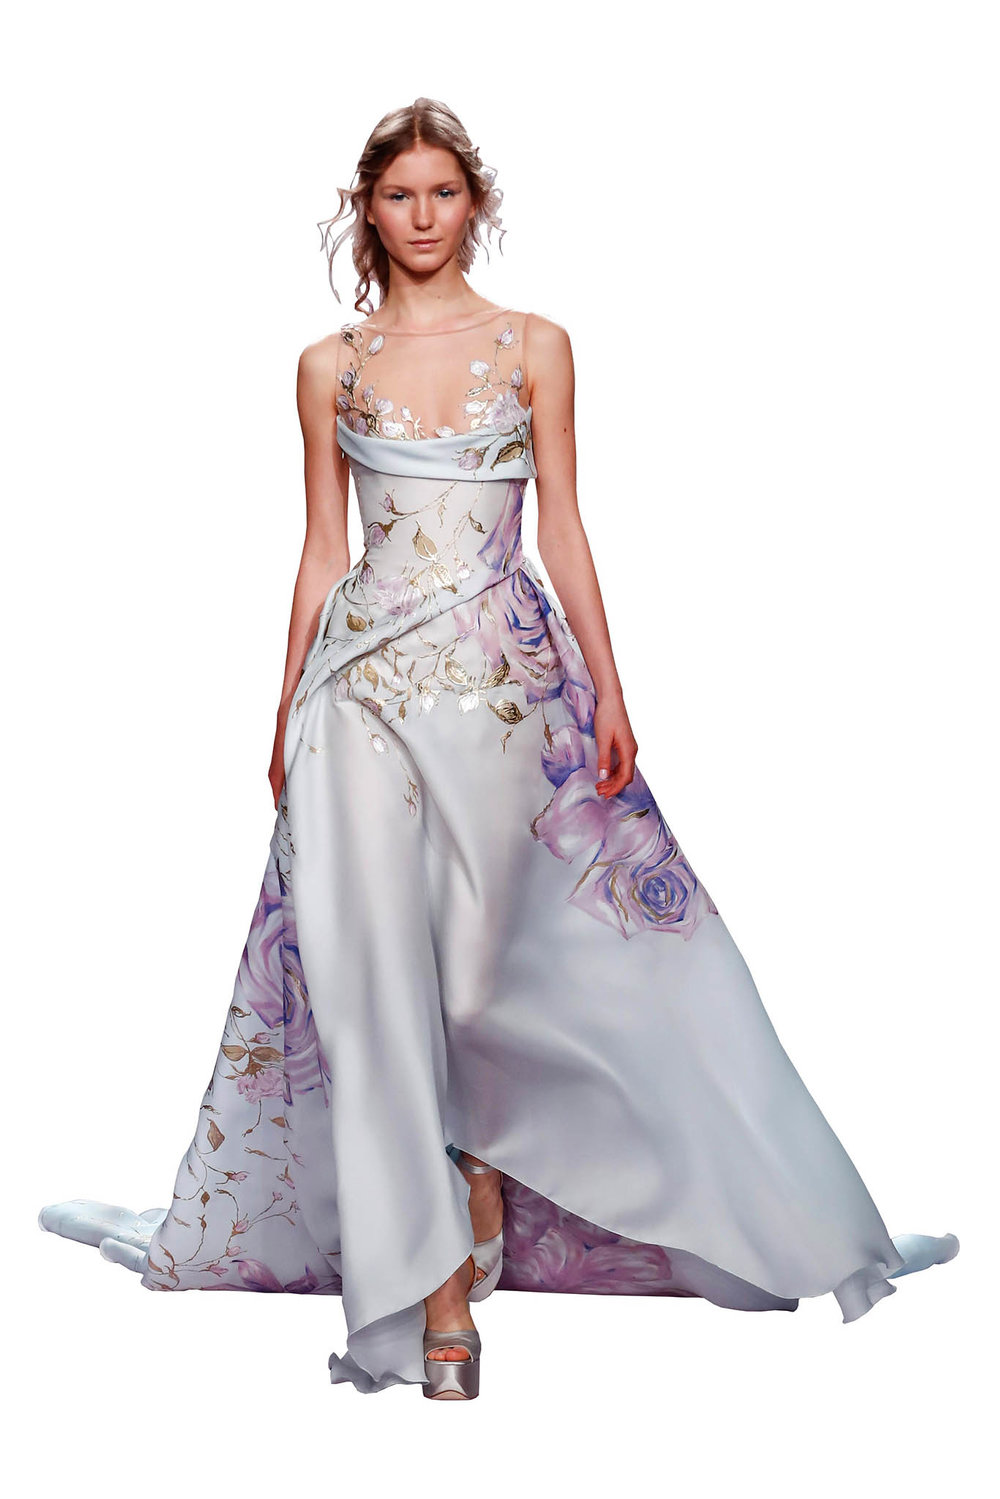 Georges Chakra Haute Couture Spring Summer 2017